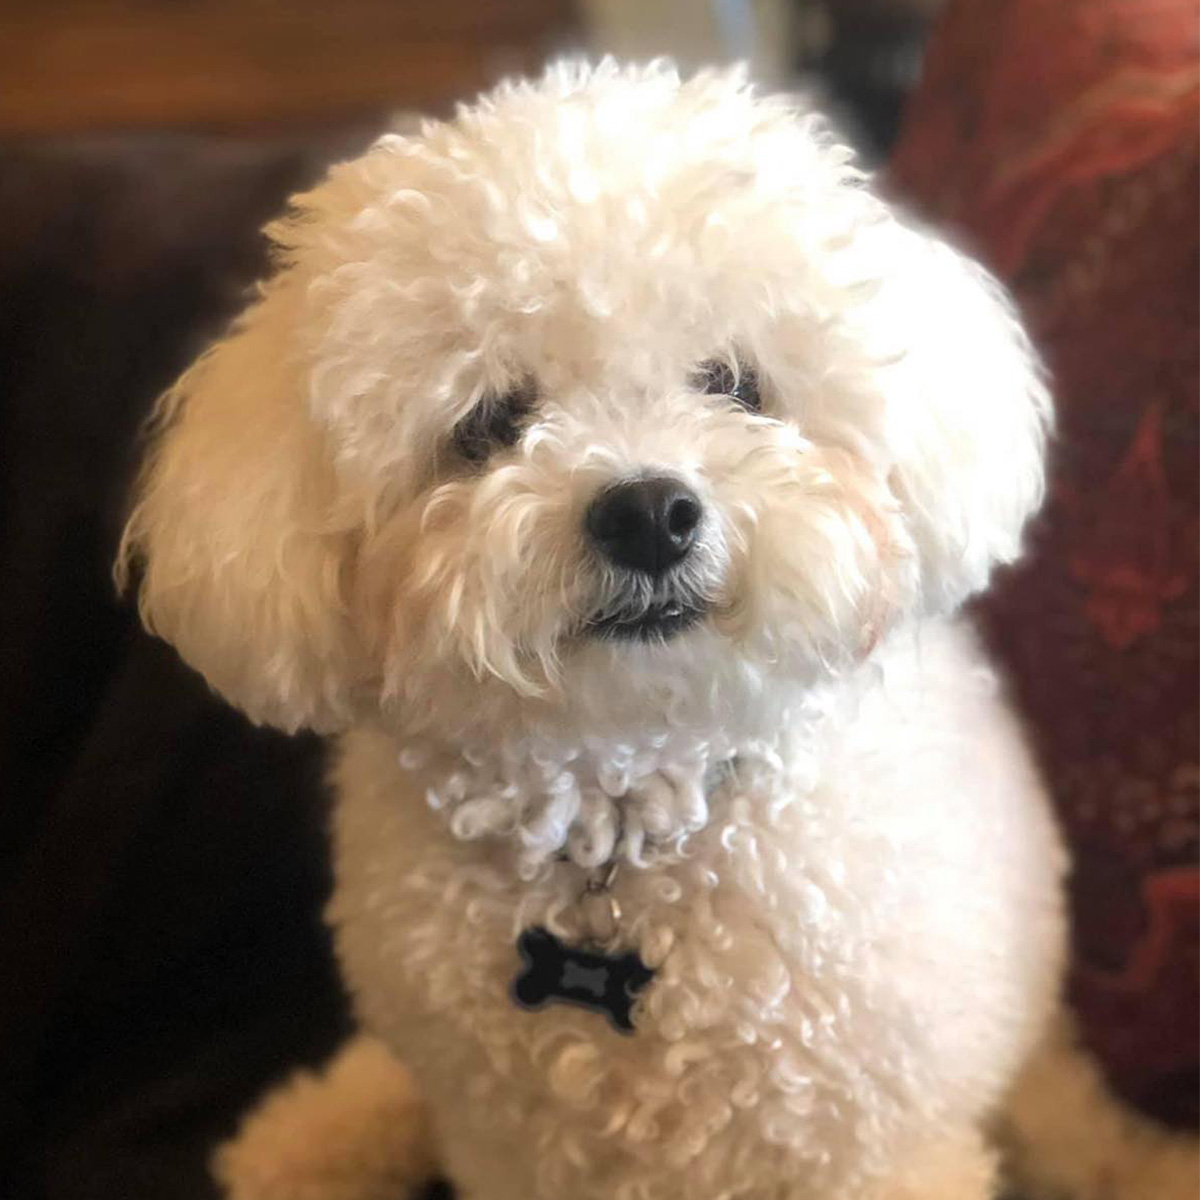 Meet Karen G. from San Antonio, Texas and her almost-five-year-old Bichon Frise, Tucker! Her family has a long-standing tradition of loving Bichons; in fact her father the Colonel brought in the first of their Bichons.